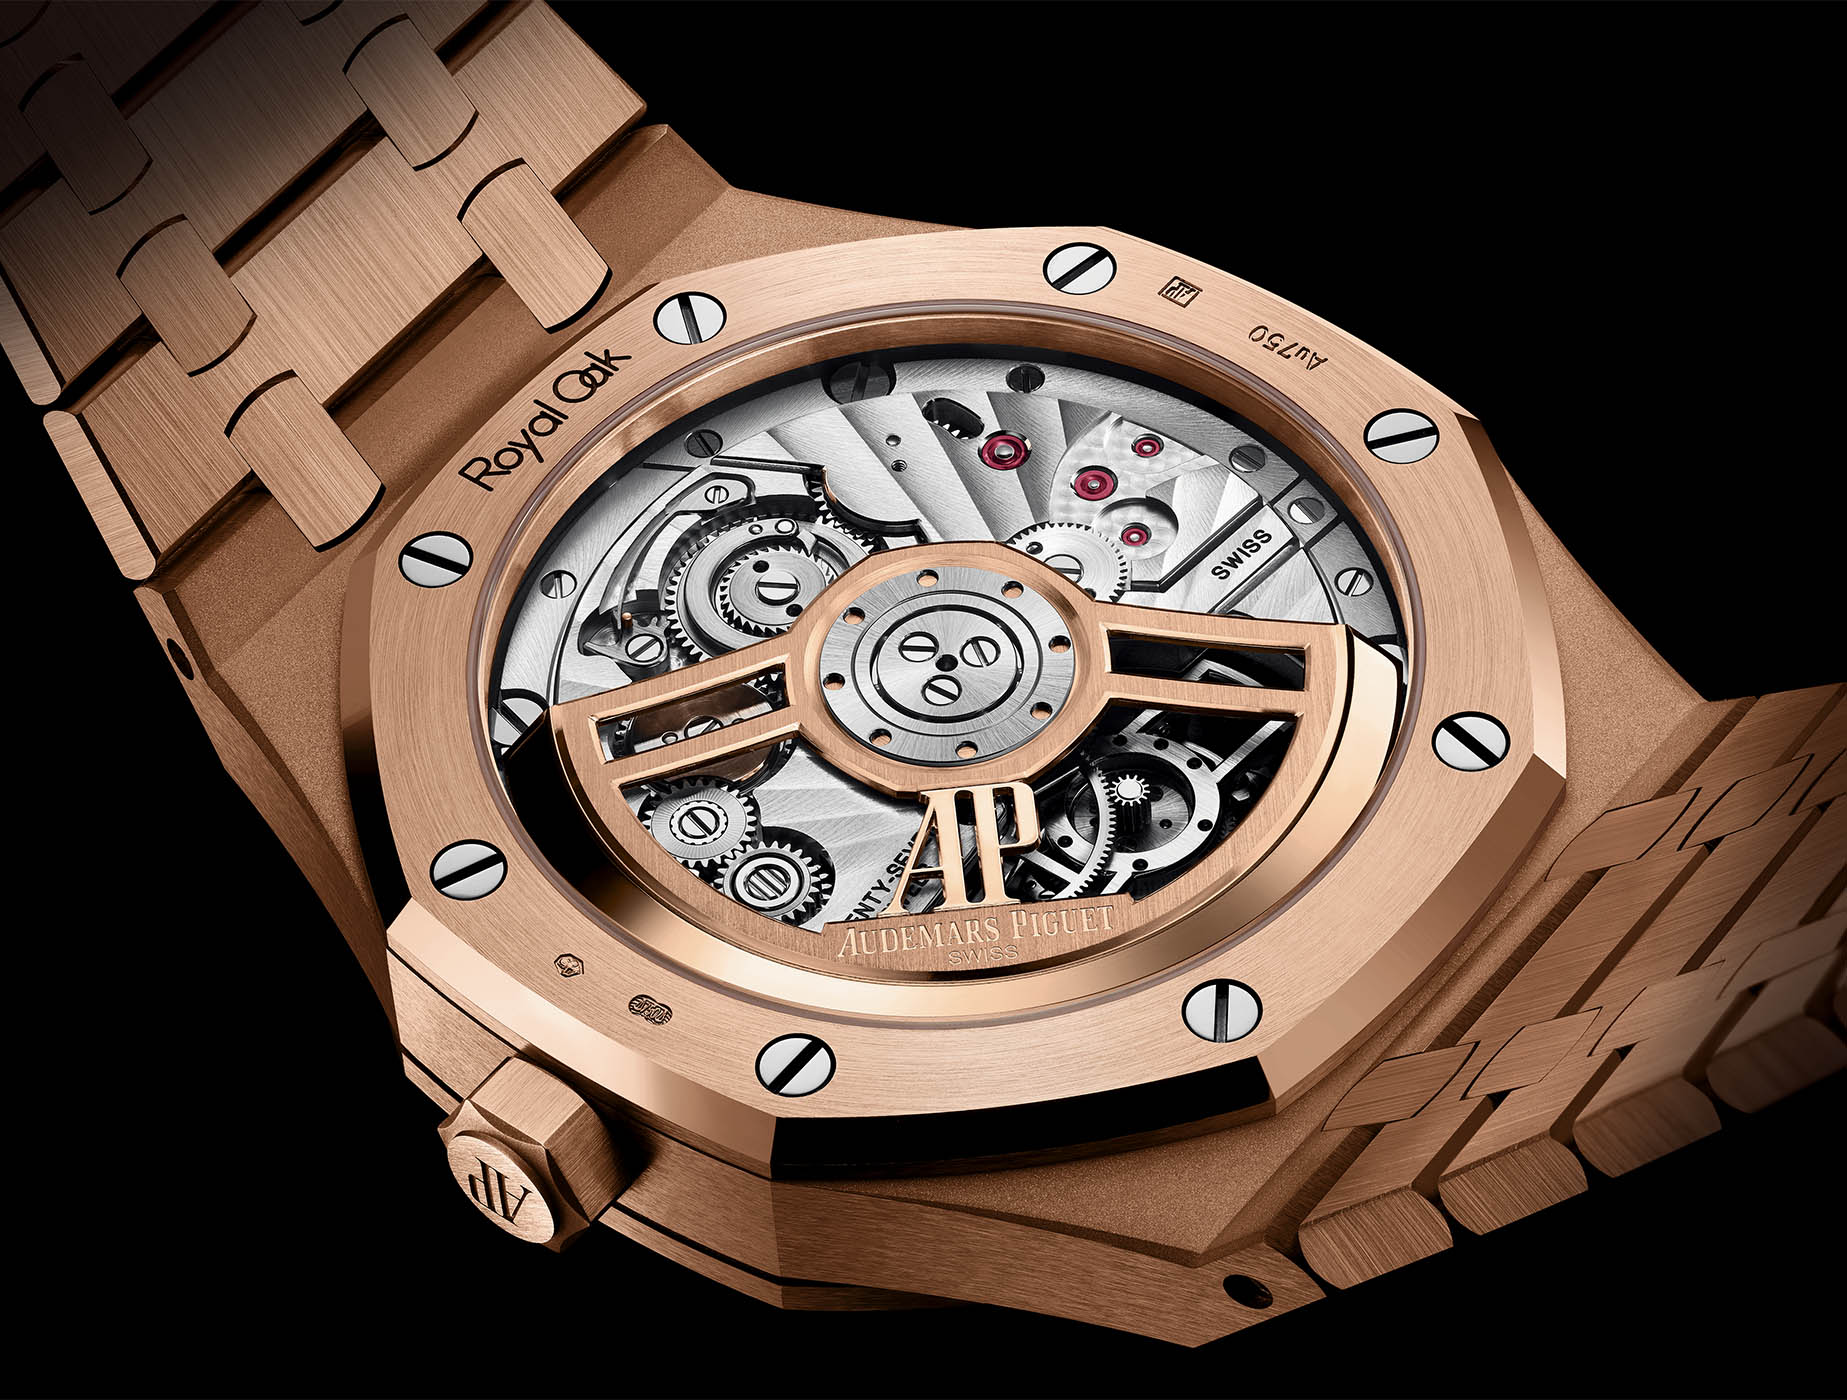 Audemars Piguet Royal Oak Selfwinding Flying Tourbillon 41mm